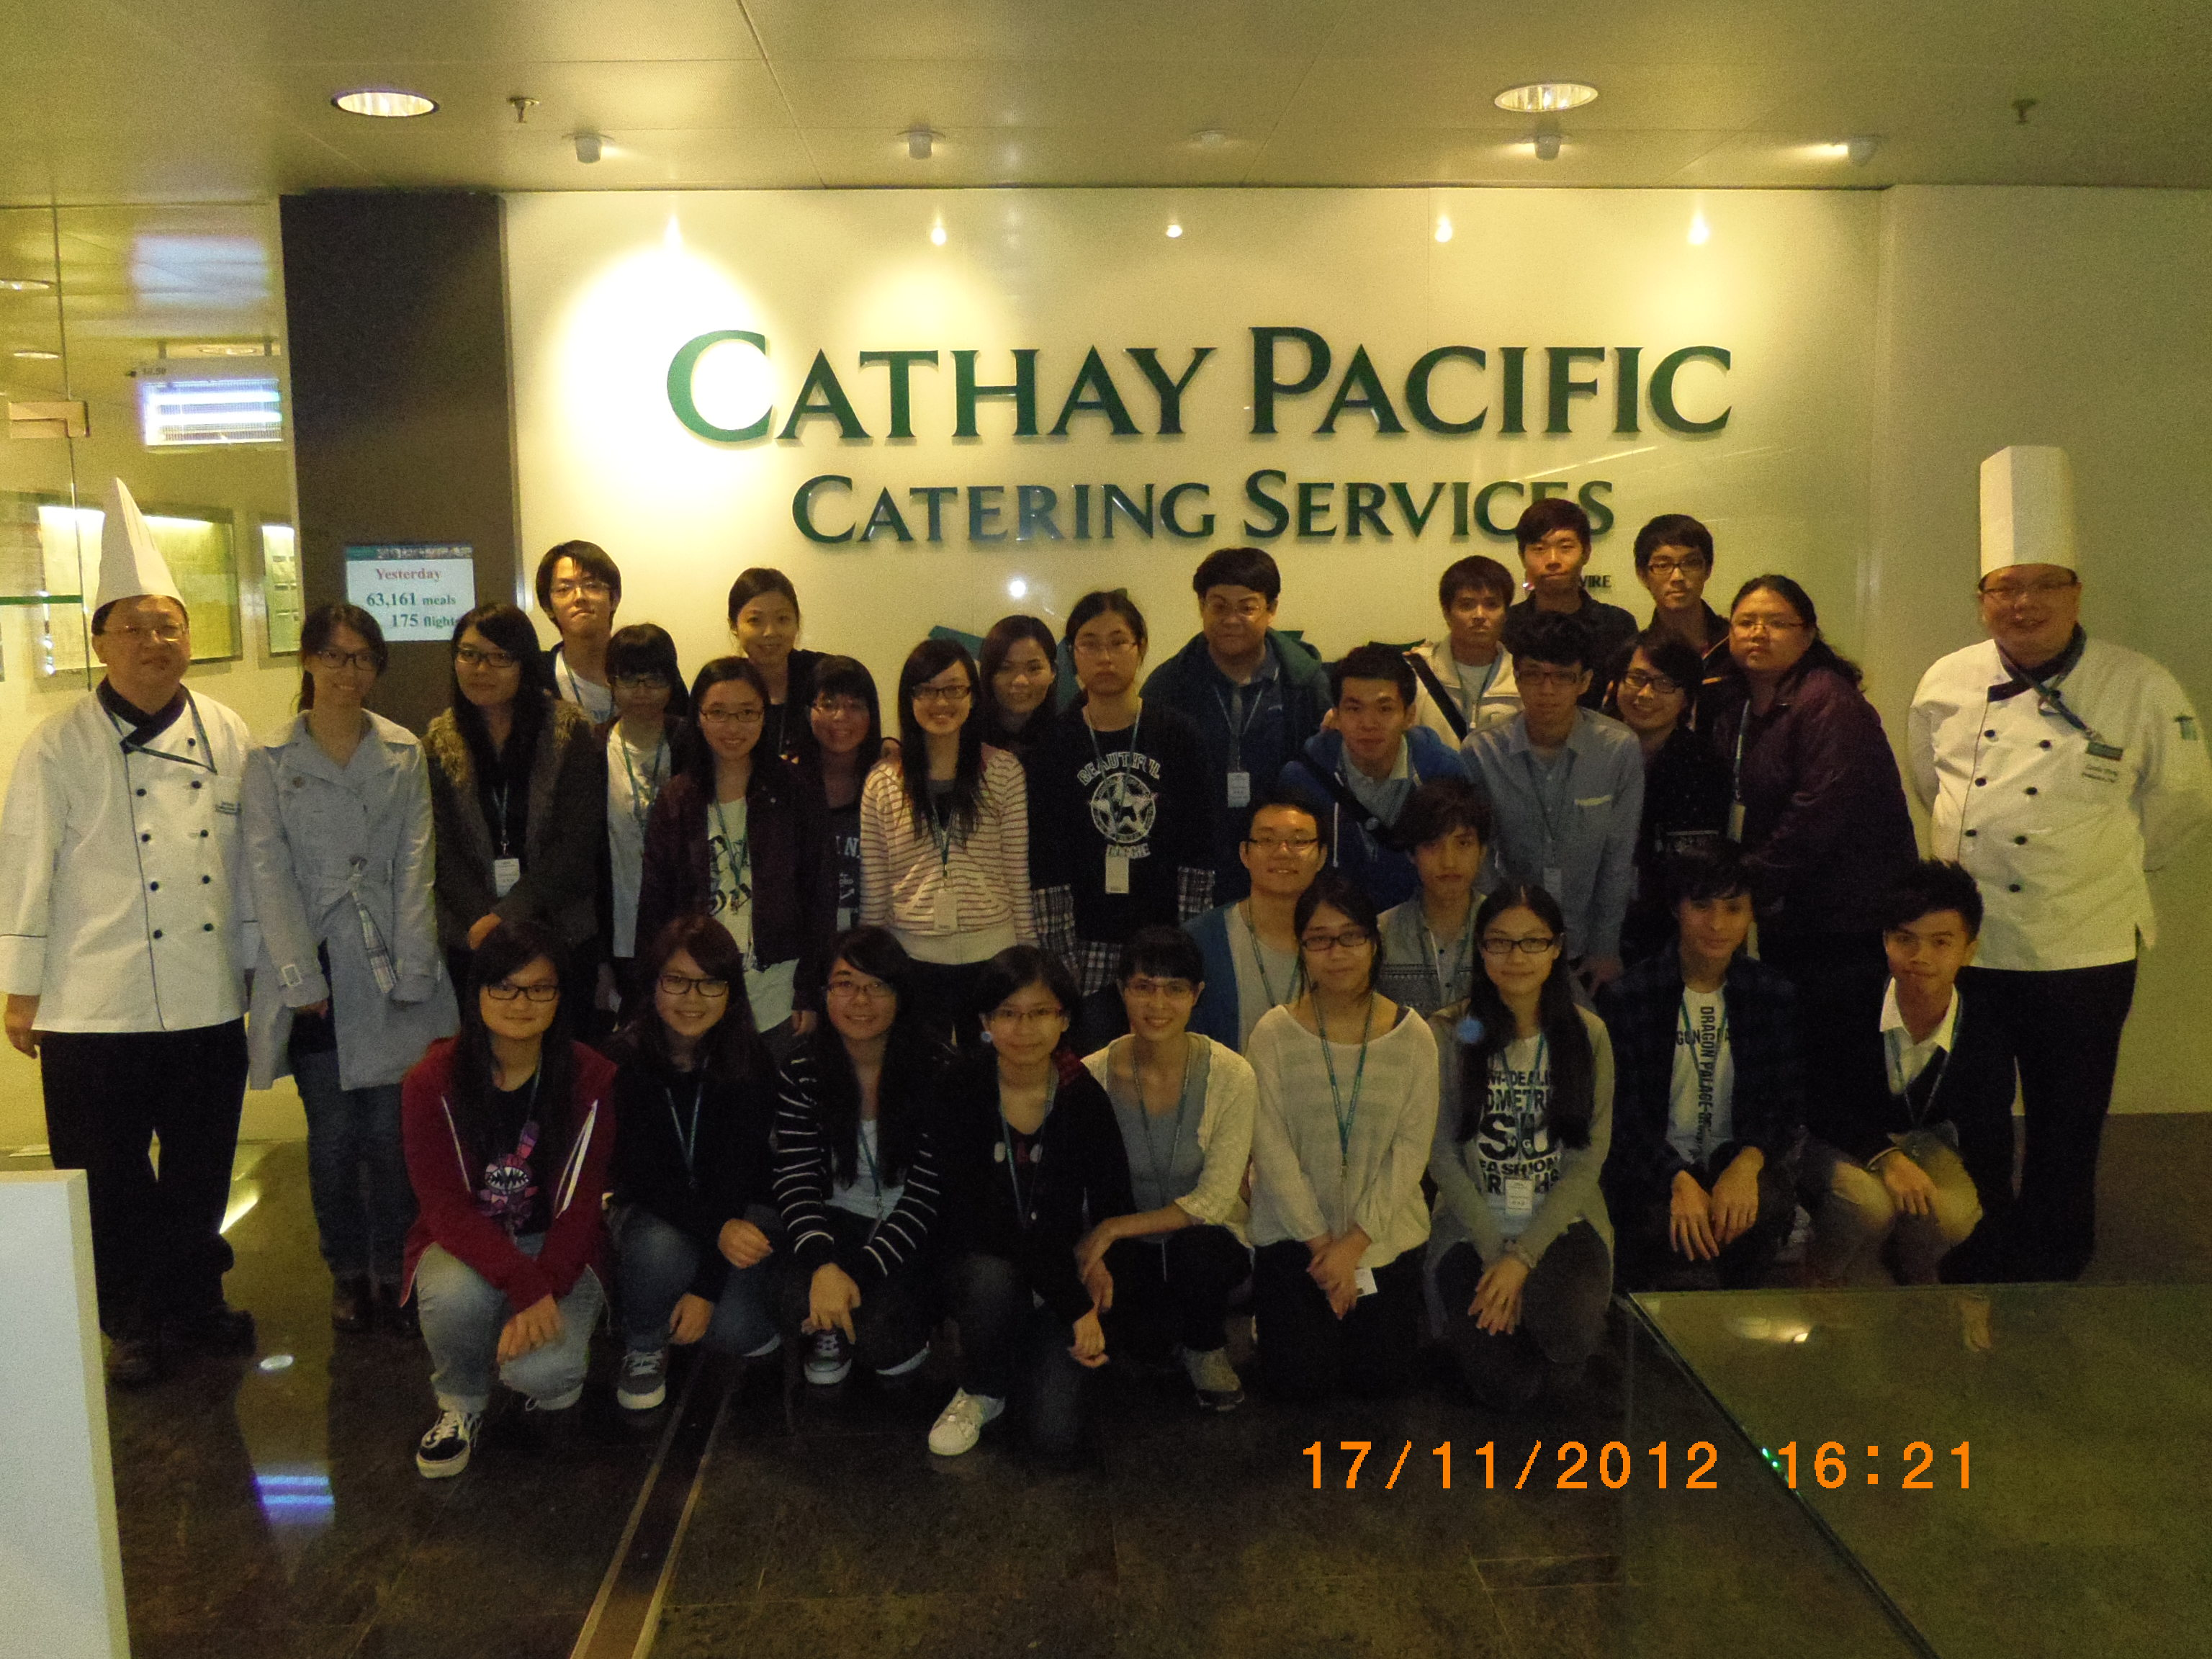 Visit to Cathay Pacific Catering Services in Tung Chung - Photo - 1